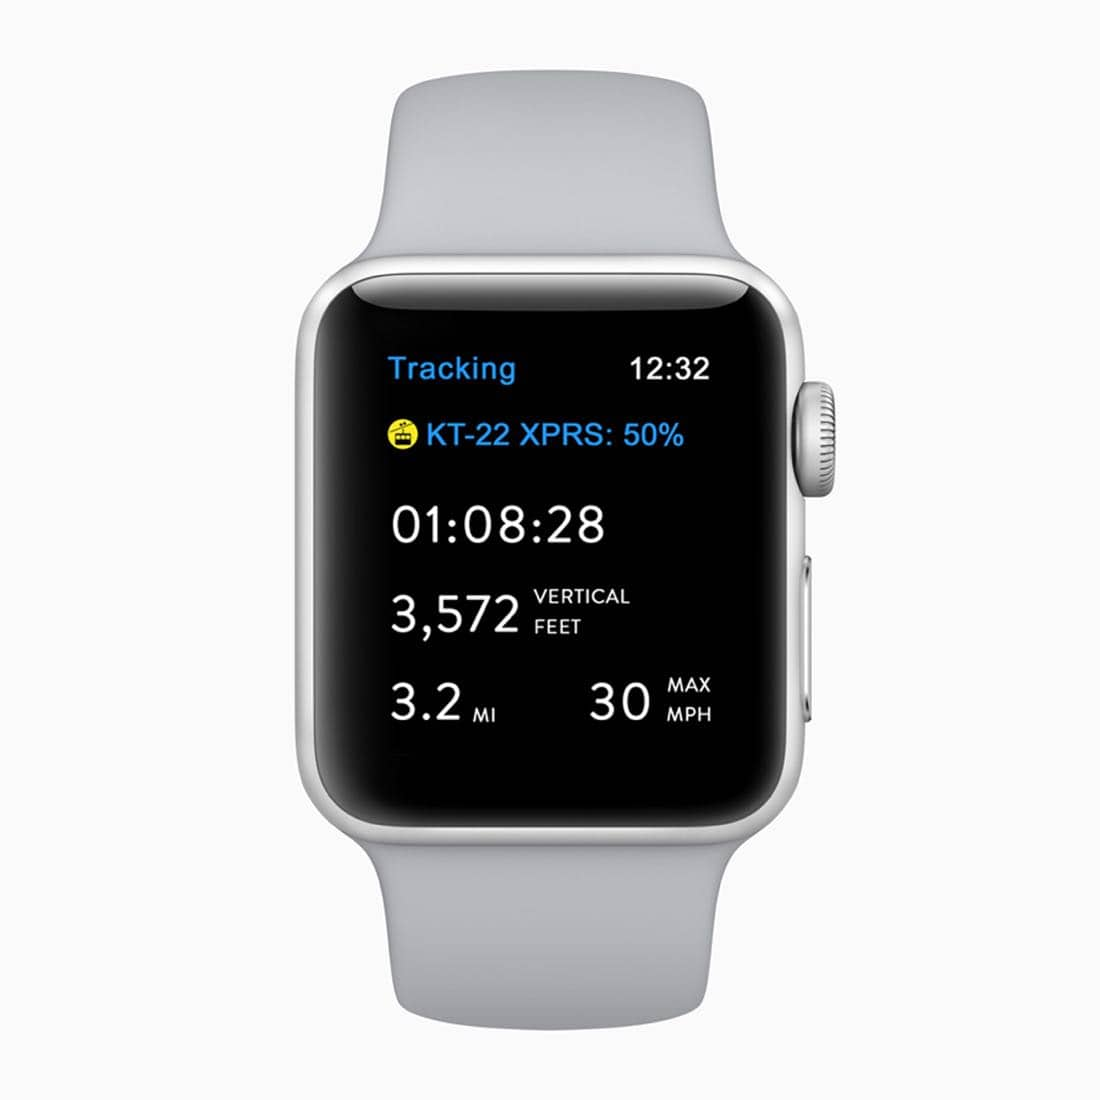 Apple Watch Series 3 tracking 20282018